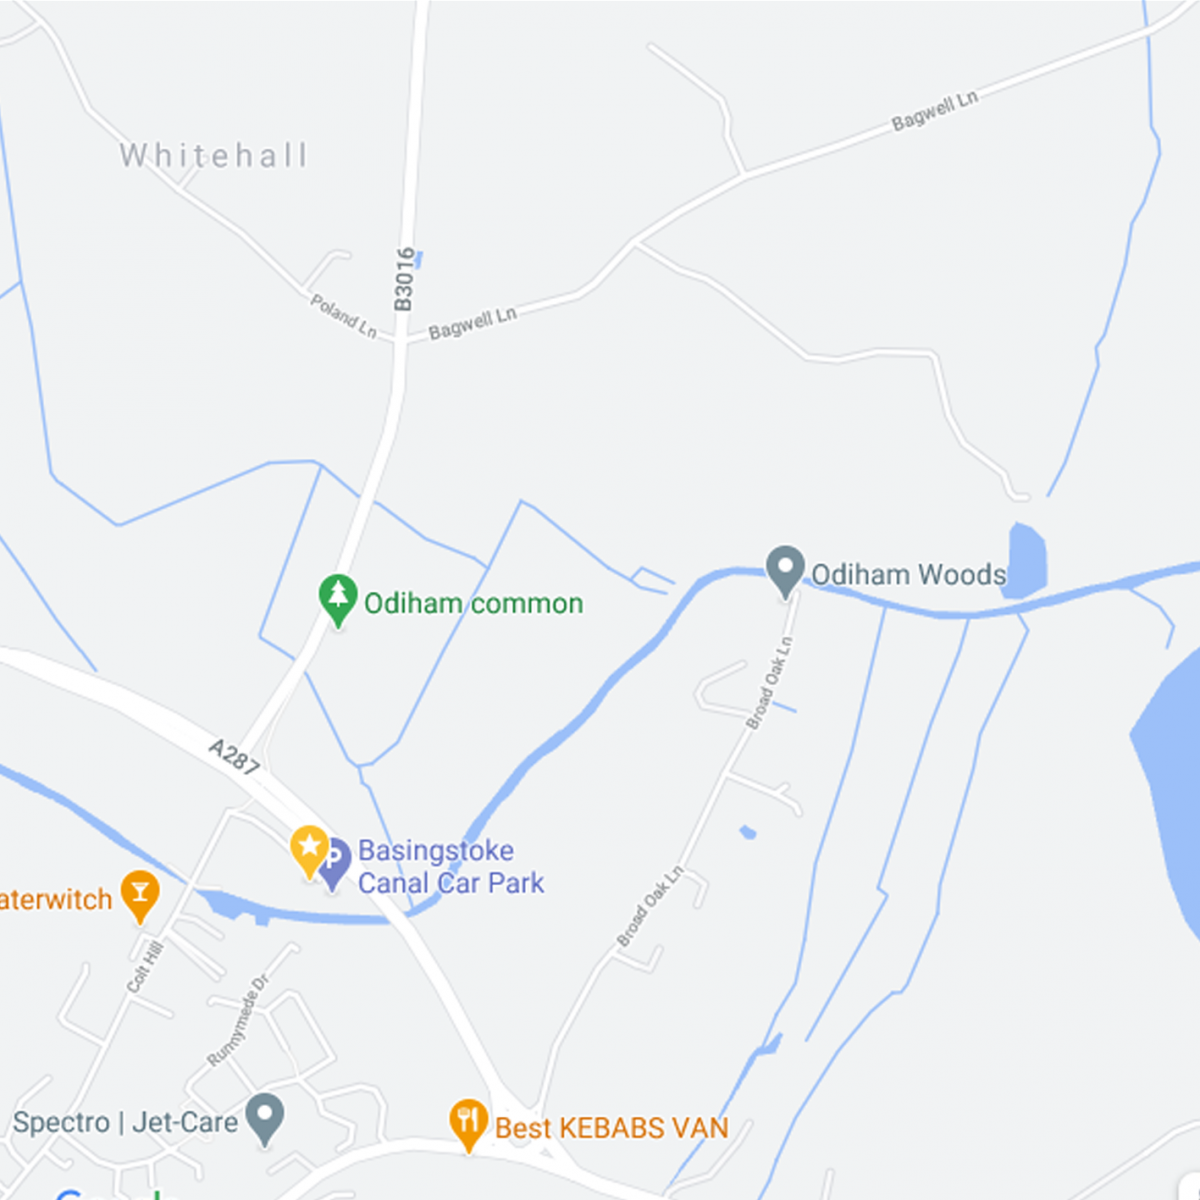 Google map image of Odiham Common